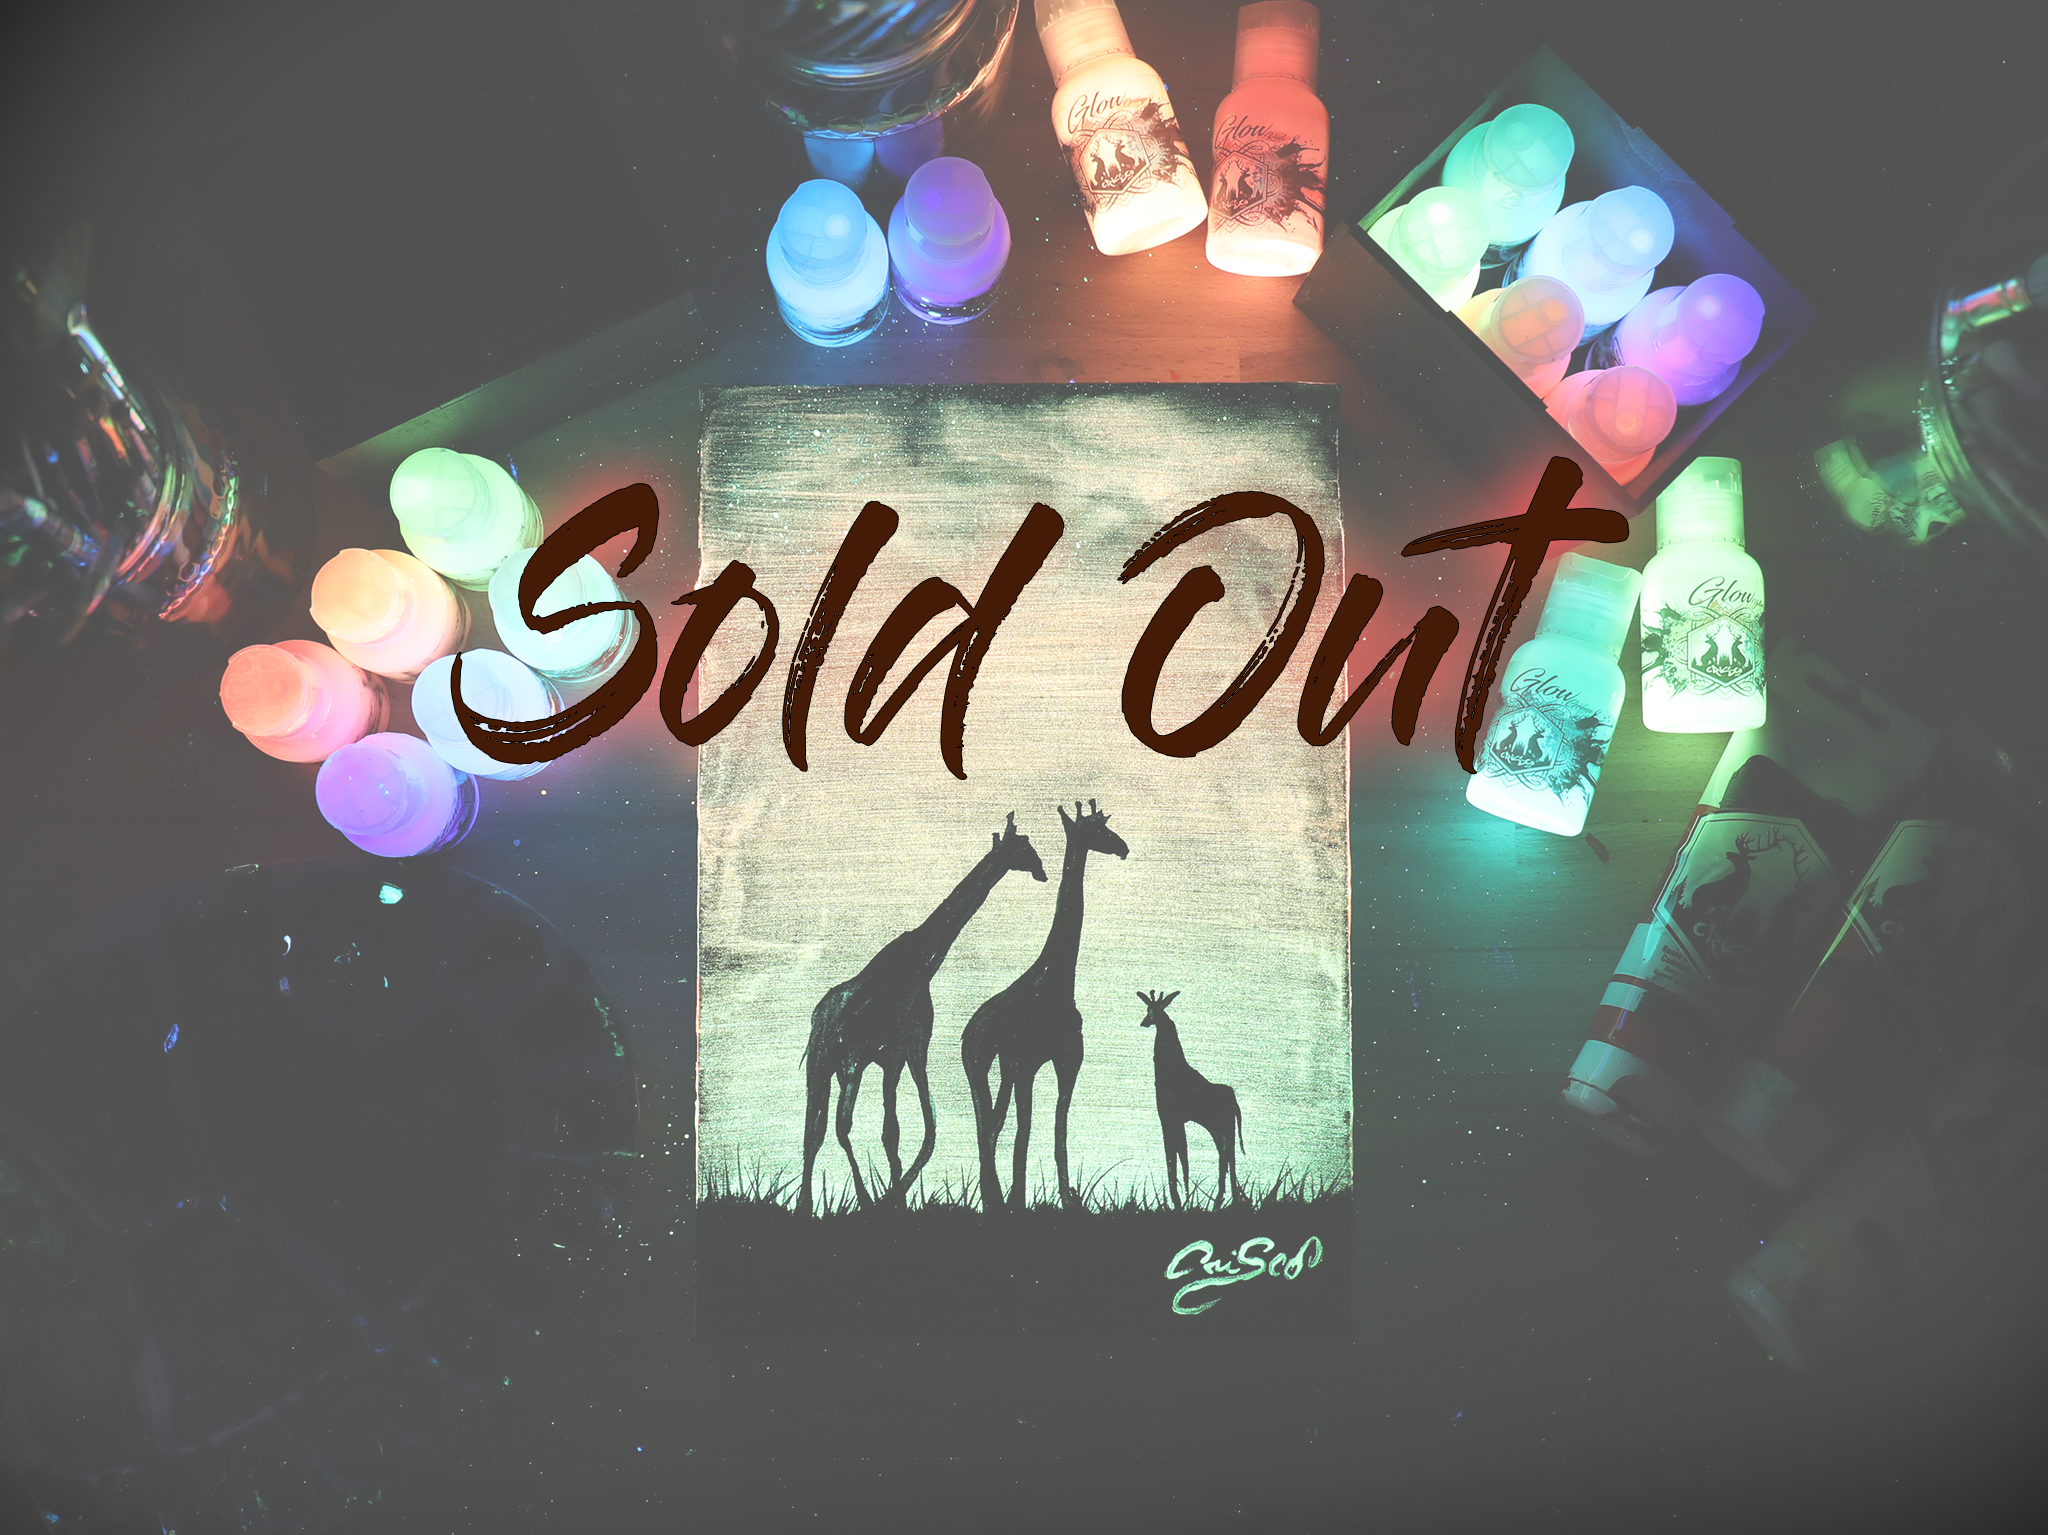 sold out filexa